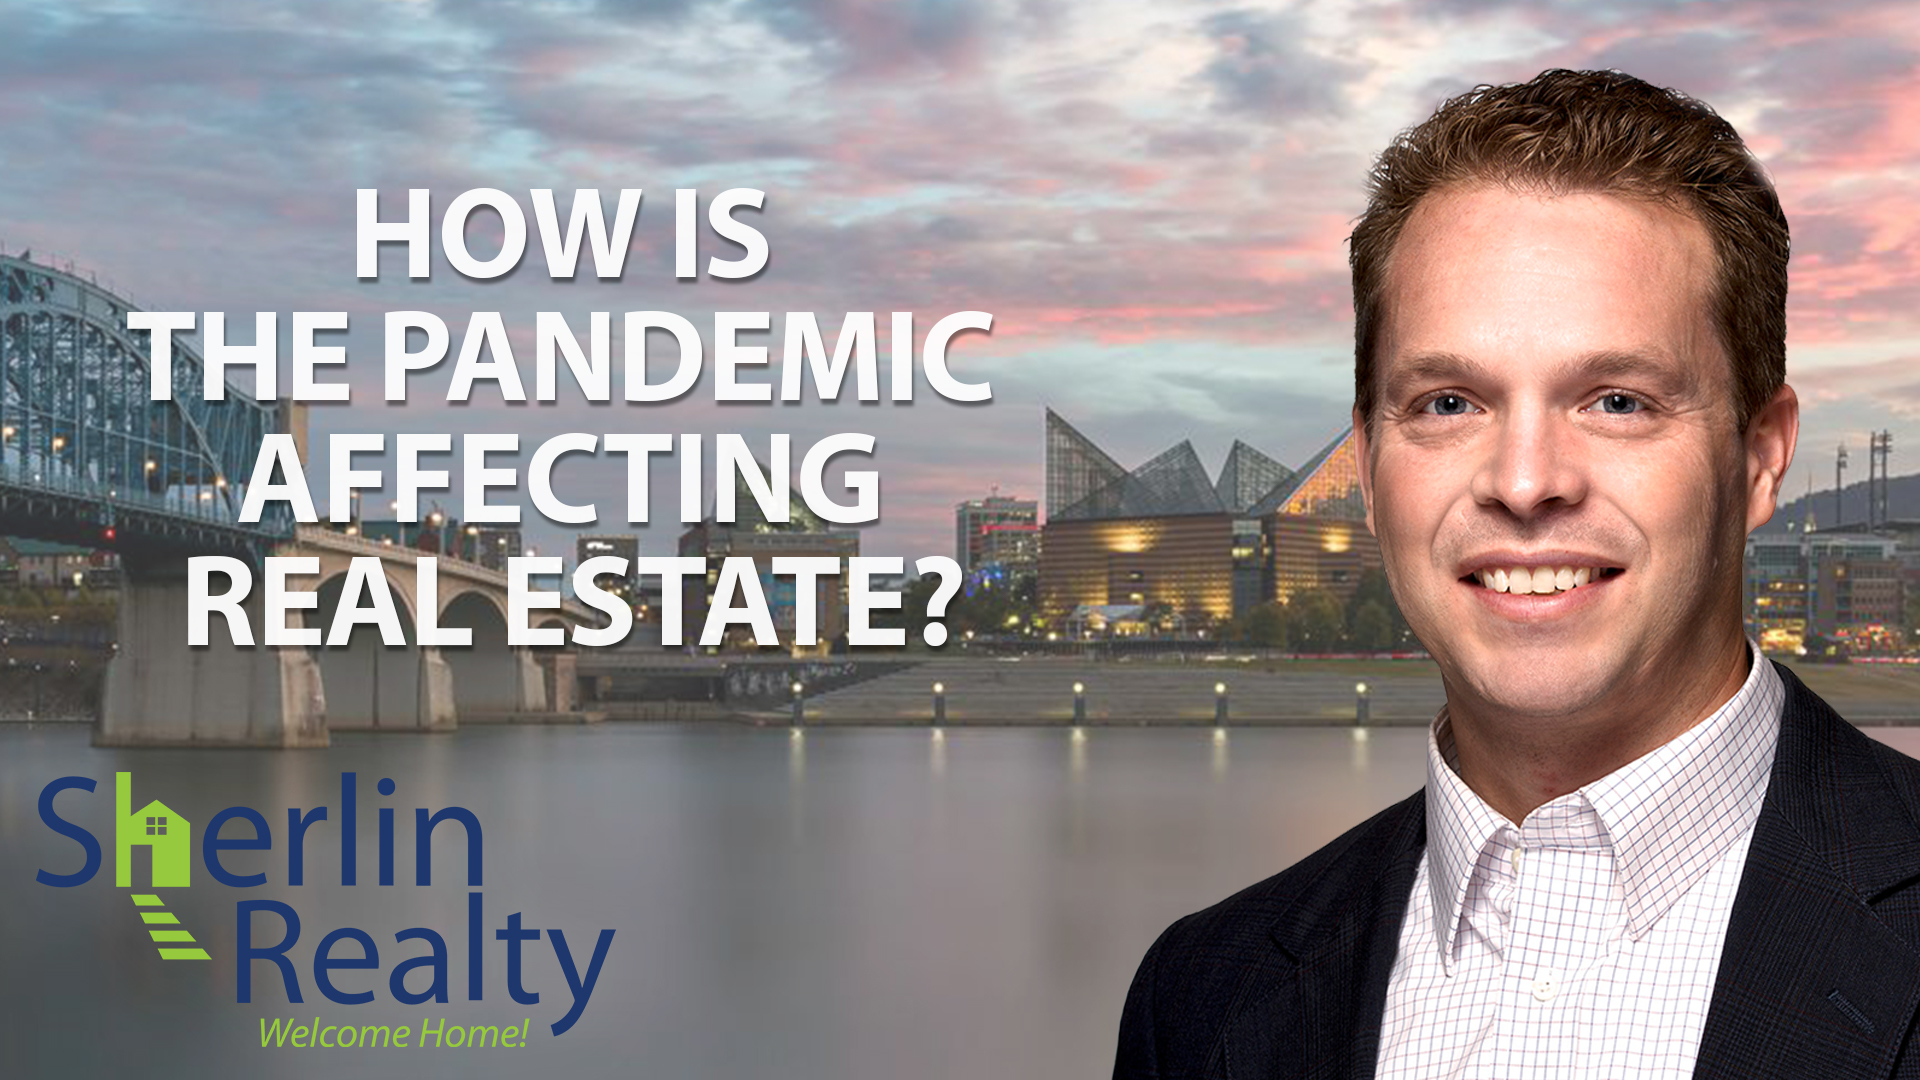 How Real Estate Is Being Affected by the Pandemic